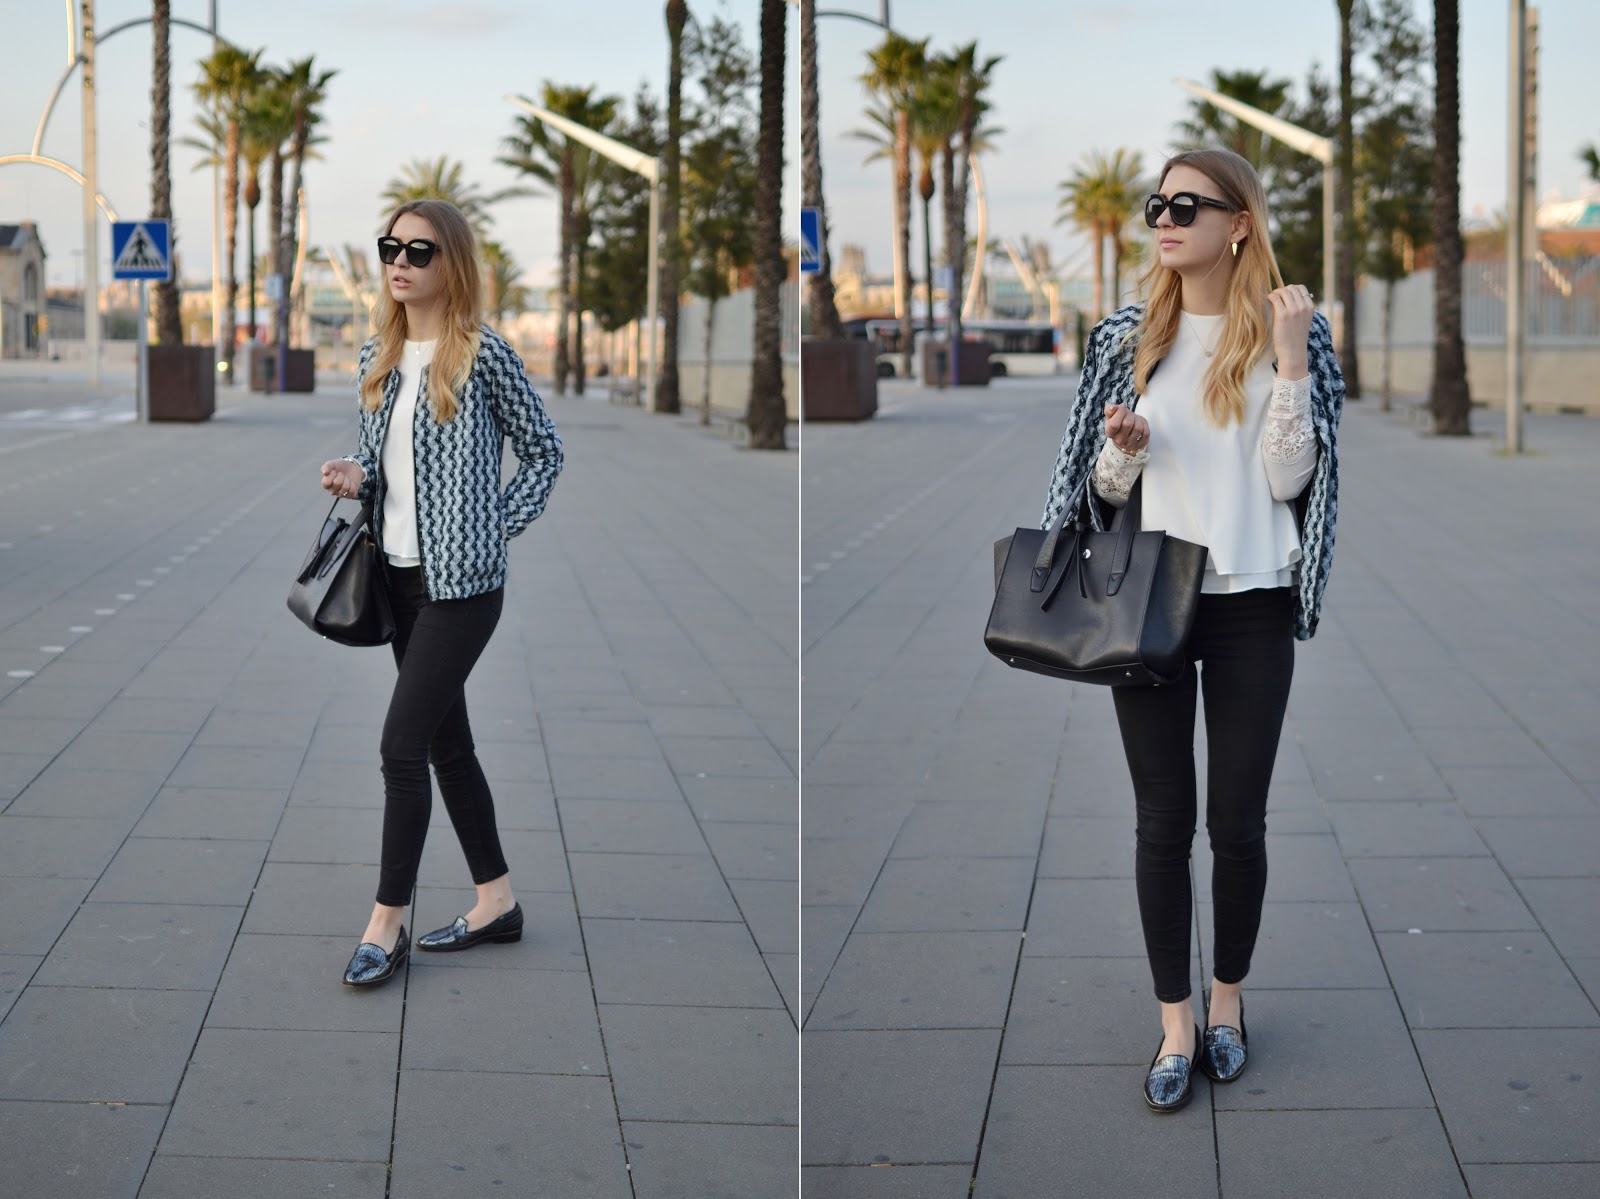 Luxembourg fashion and lifestyle blogger